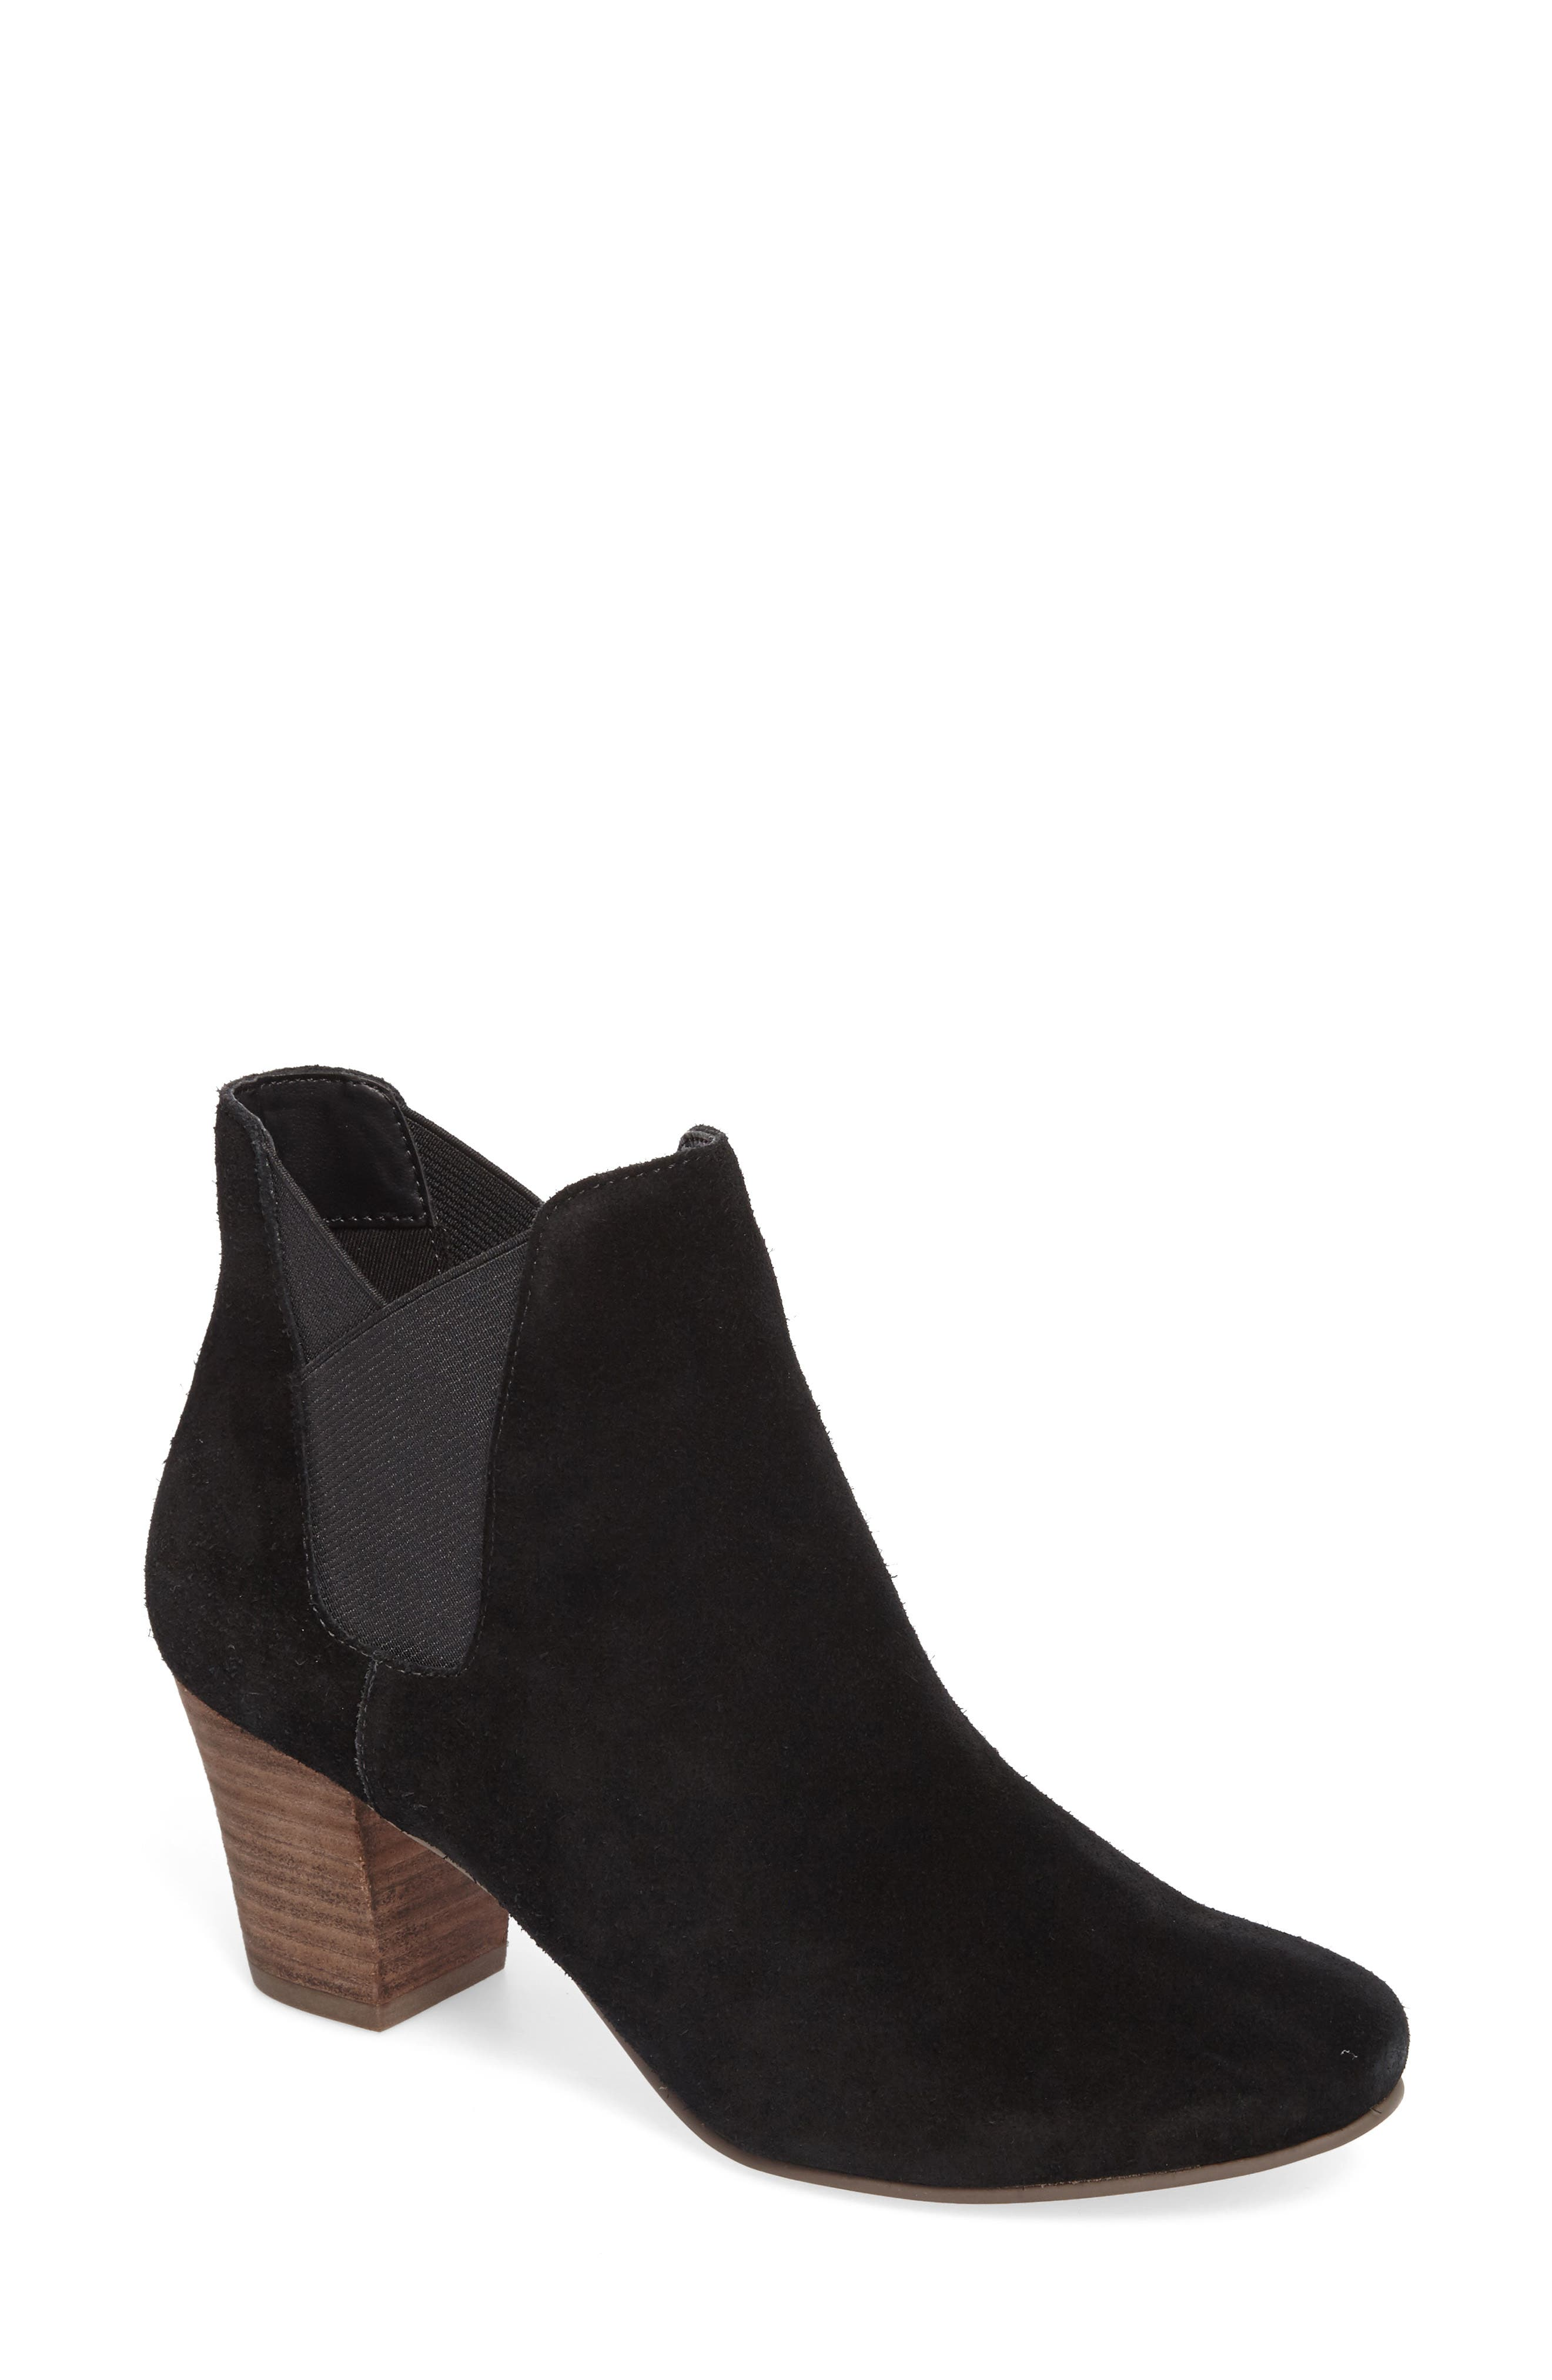 Alternate Image 1 Selected - Sole Society Acacia Bootie (Women)